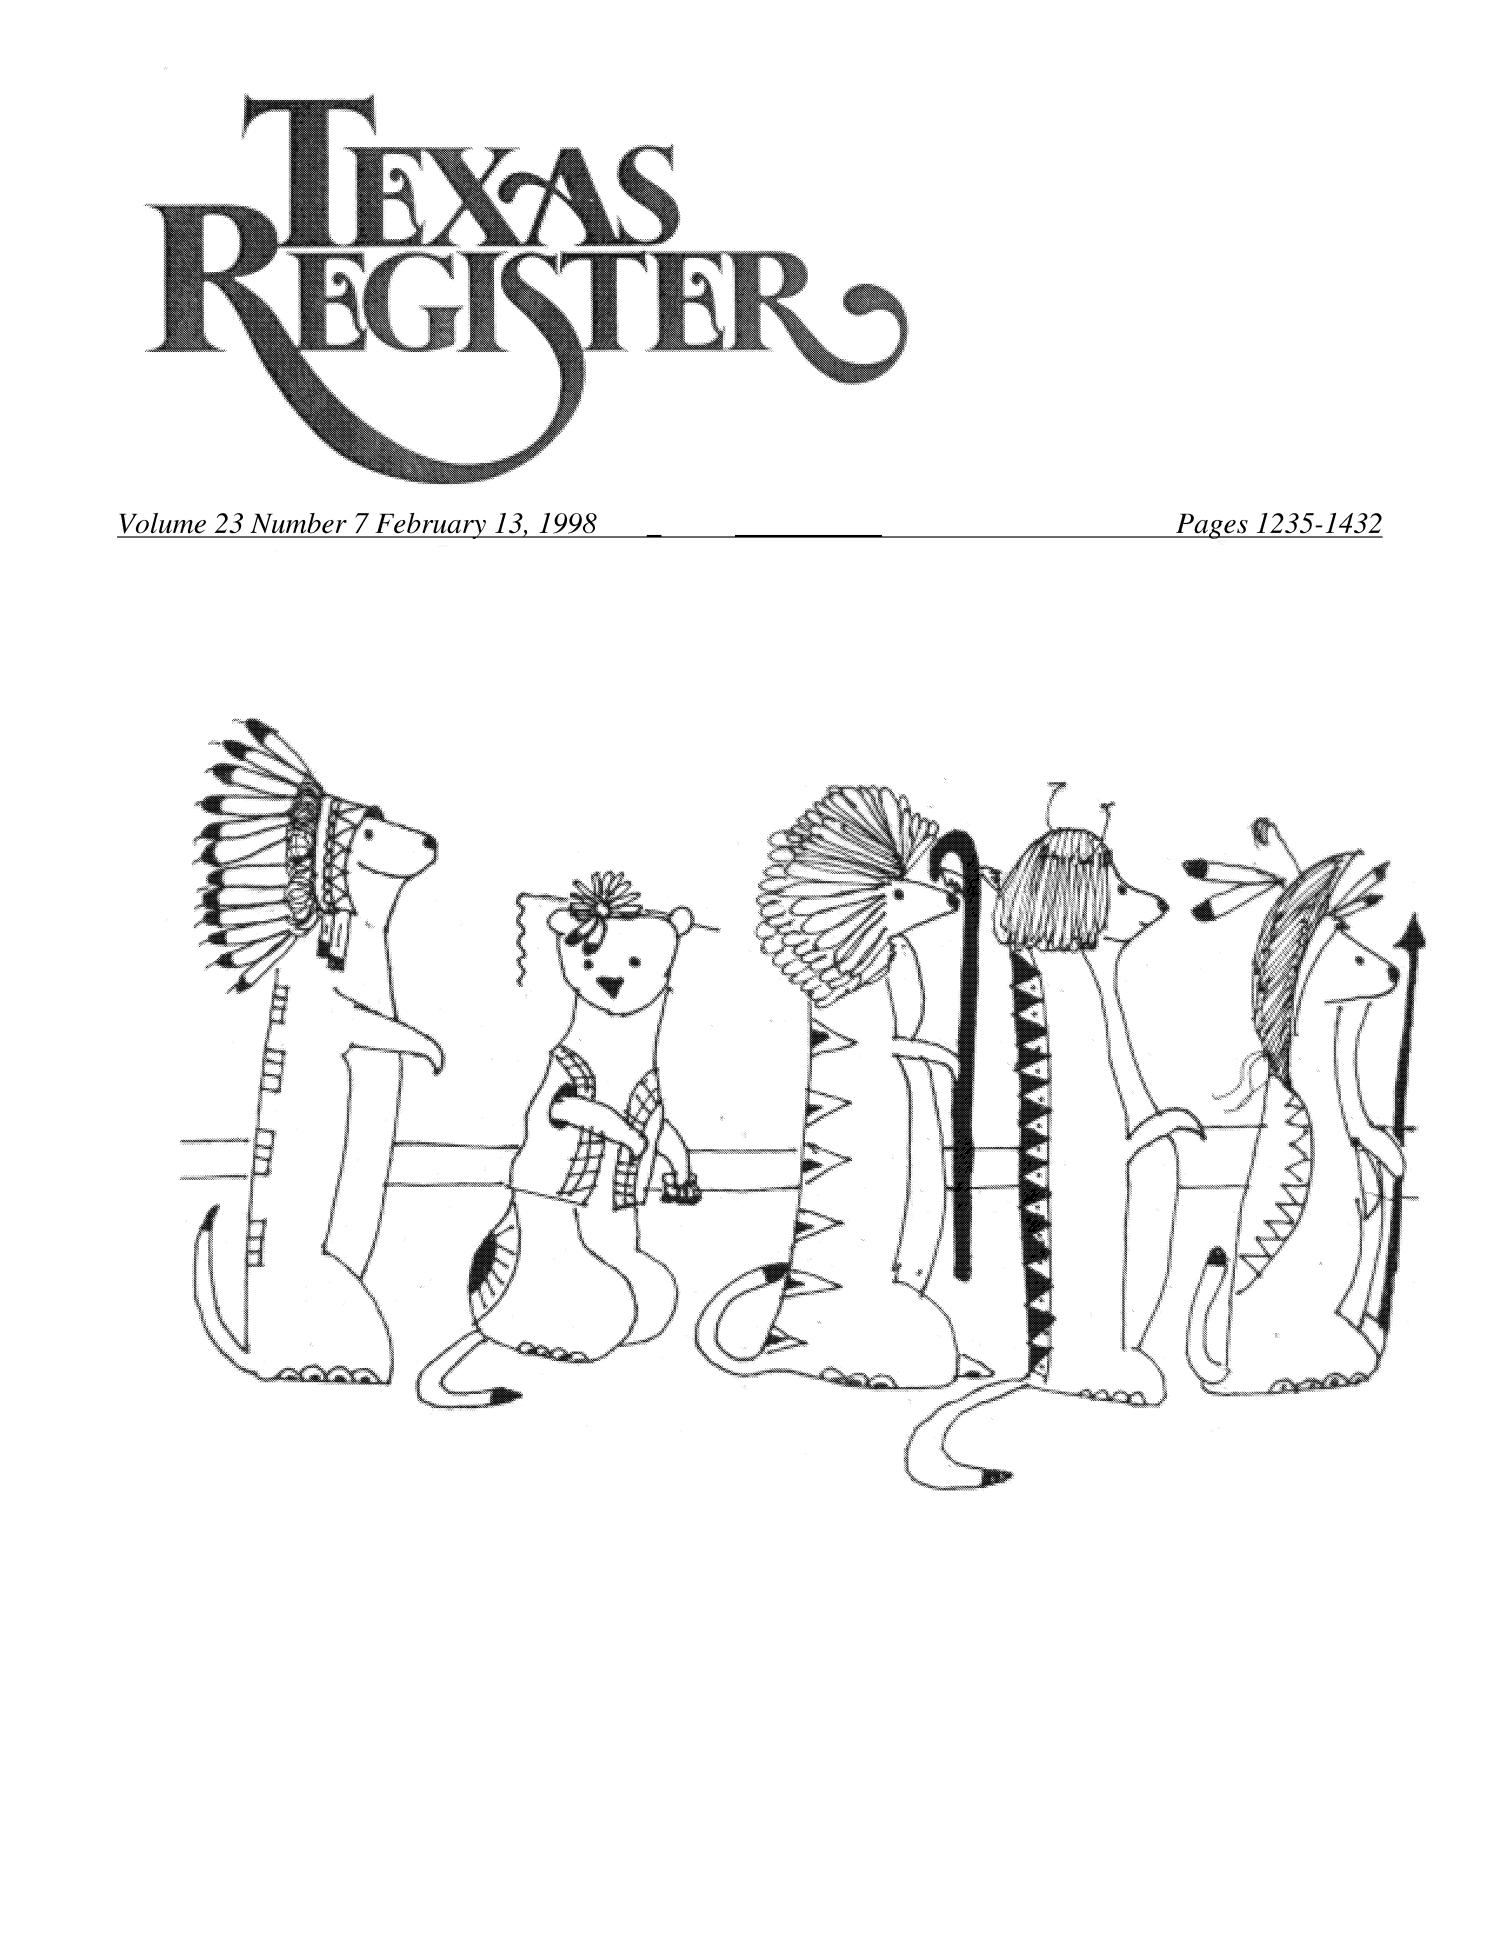 Texas Register, Volume 23, Number 7, Pages 1235-1432